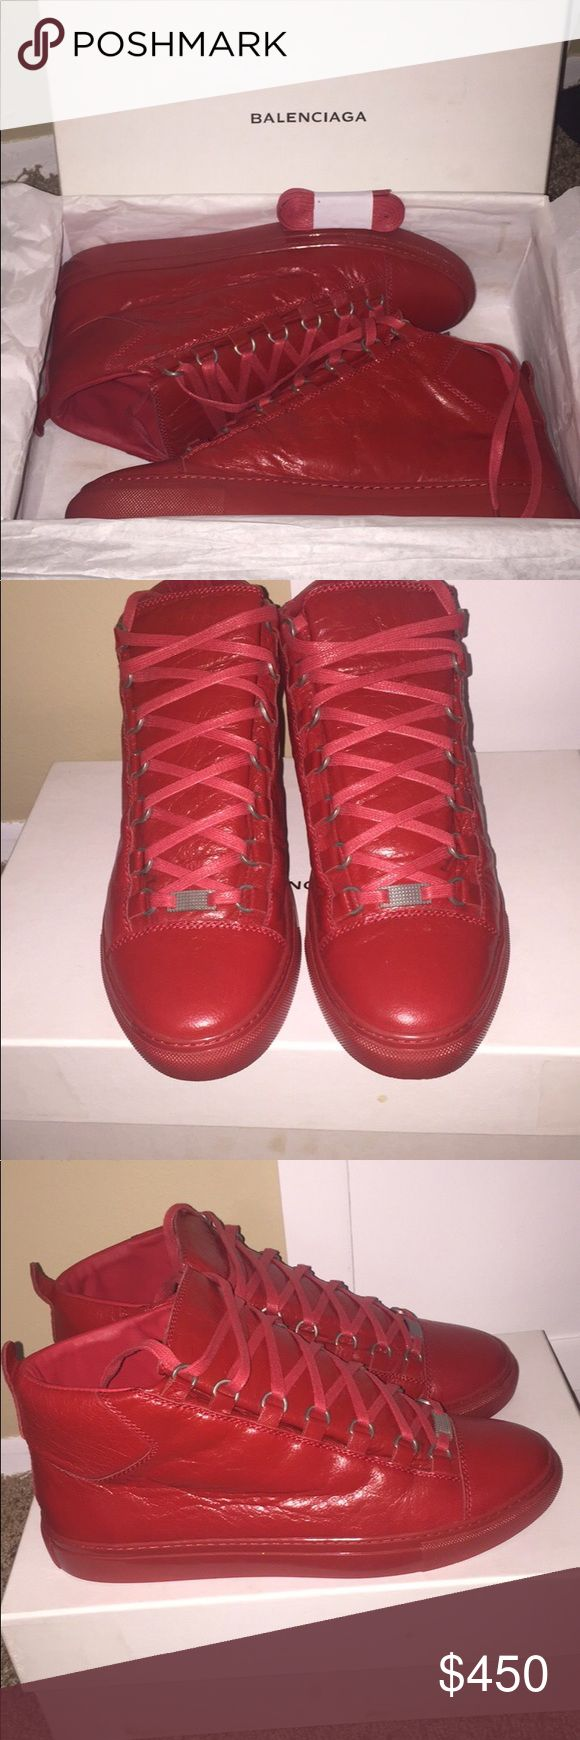 Red Balenciaga Arena size 44eu (12 US) Red Balenciaga size 44eu (12 US). Had these for about 3 years and wore them literally like 10 times. Only to weddings/casino etc. super super clean I'd say 9.5/10 condition no real flaws. Comes with box and extra set of laces. No lowballs please.. I bought them brand new from Barney's I know what they're worth and if you have any questions feel free to message me. Balenciaga Shoes Sneakers